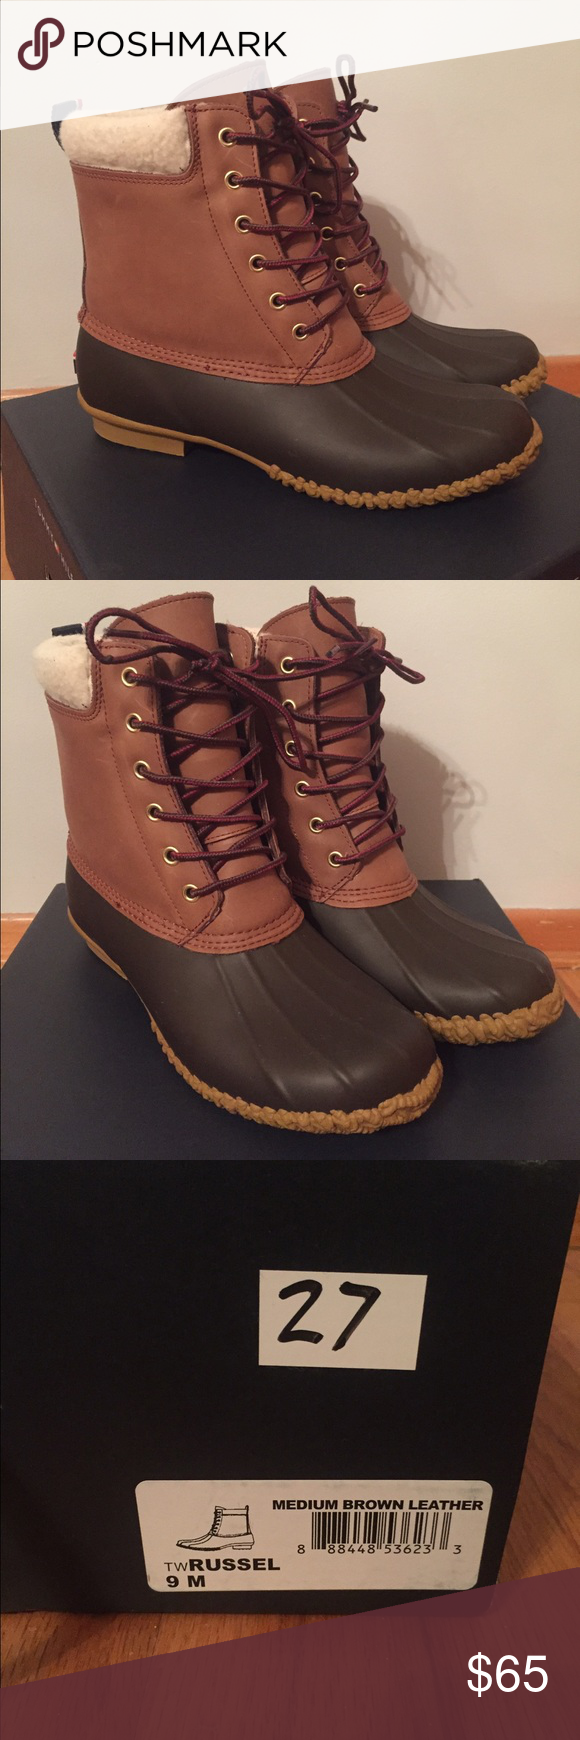 Tommy Hilfiger Duck Boots Women's Tommy Hilfiger Duck Boots. Only worn a few times still in good shape. Brown rubber toe. Size 9 - true to size Tommy Hilfiger Shoes Winter & Rain Boots